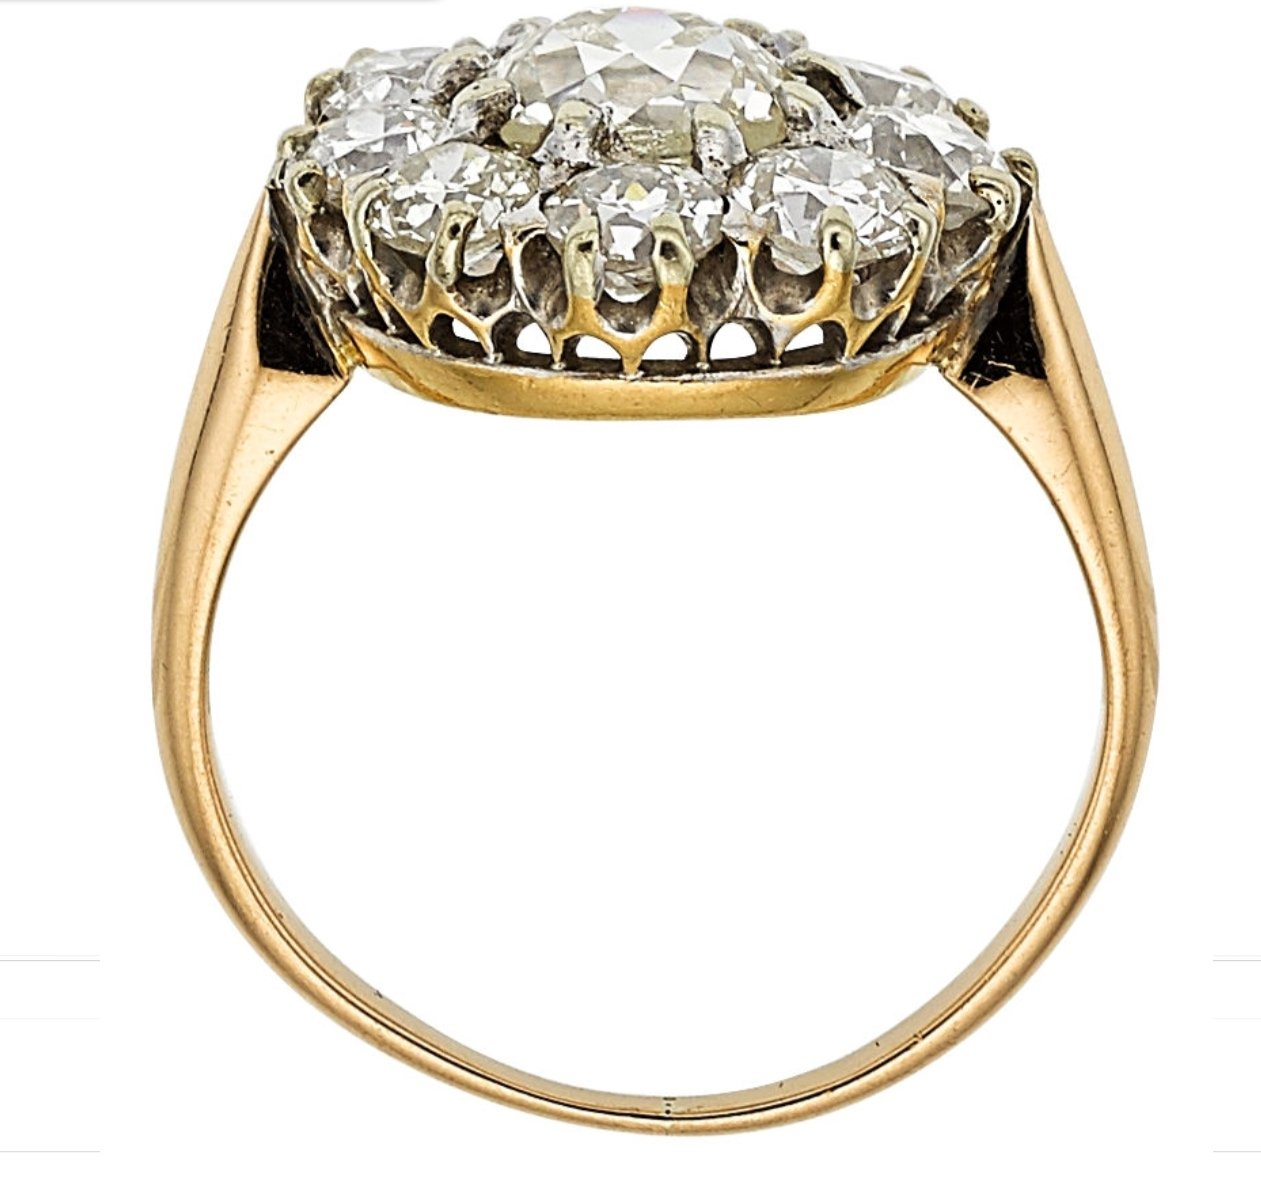 SOLD * 14kt Yellow Gold And Platinum Old European Cut